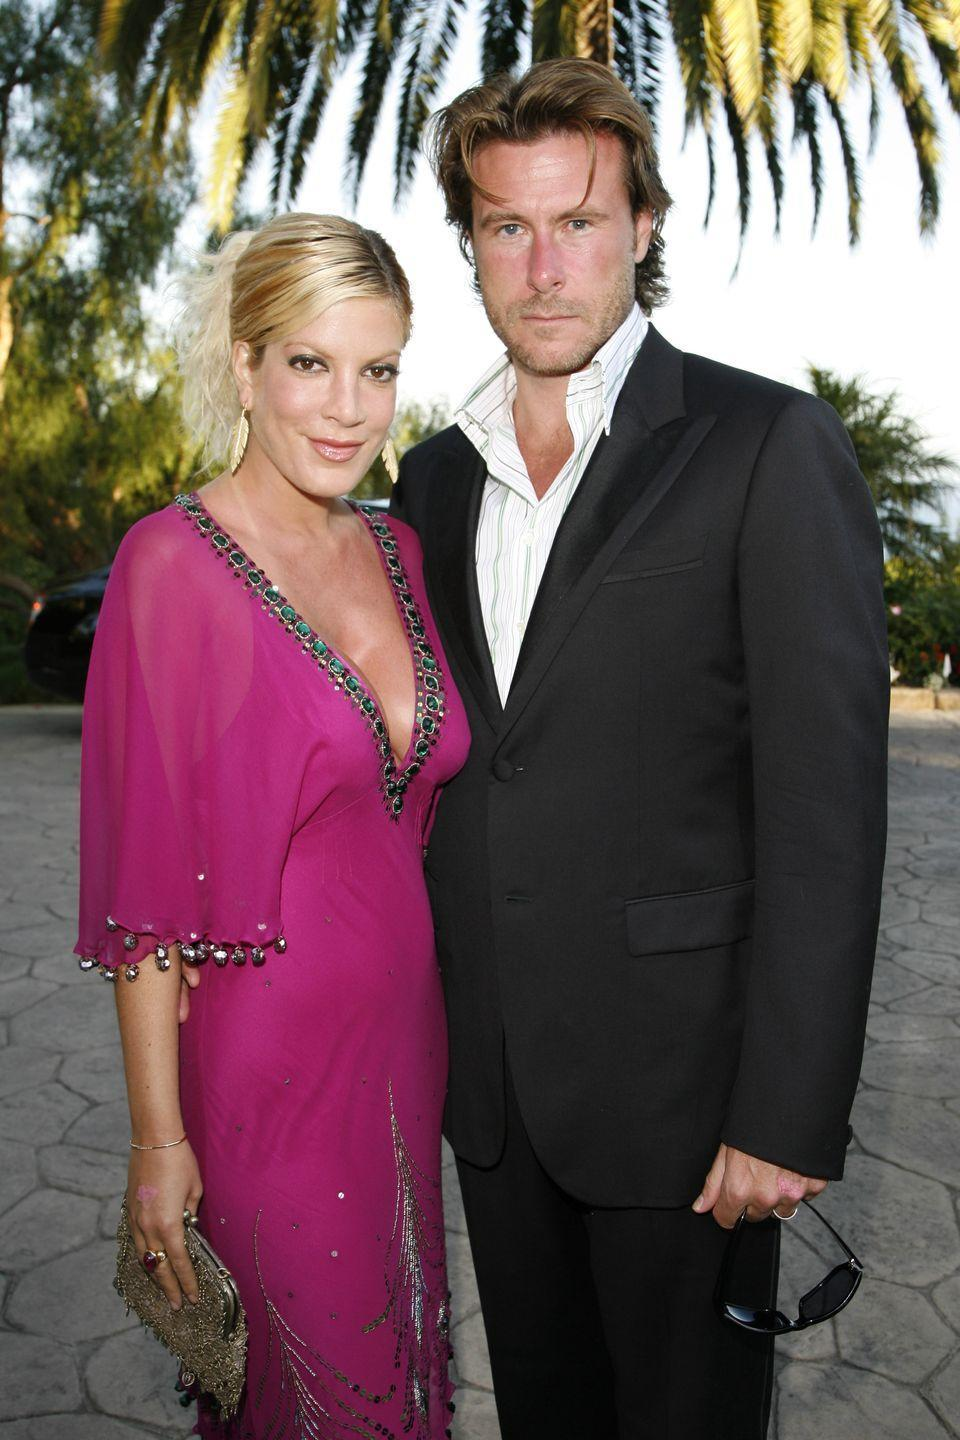 """<p>When Tori Spelling and Dean McDermott decided to say """"I do,"""" they jetted off to Fiji for their big moment. Tori and Dean, who were both married when they met and became involved, got <a href=""""https://people.com/celebrity/tori-spelling-dean-mcdermott-wed-in-fiji/"""" rel=""""nofollow noopener"""" target=""""_blank"""" data-ylk=""""slk:hitched on a private island"""" class=""""link rapid-noclick-resp"""">hitched on a private island</a> a year after meeting. </p>"""